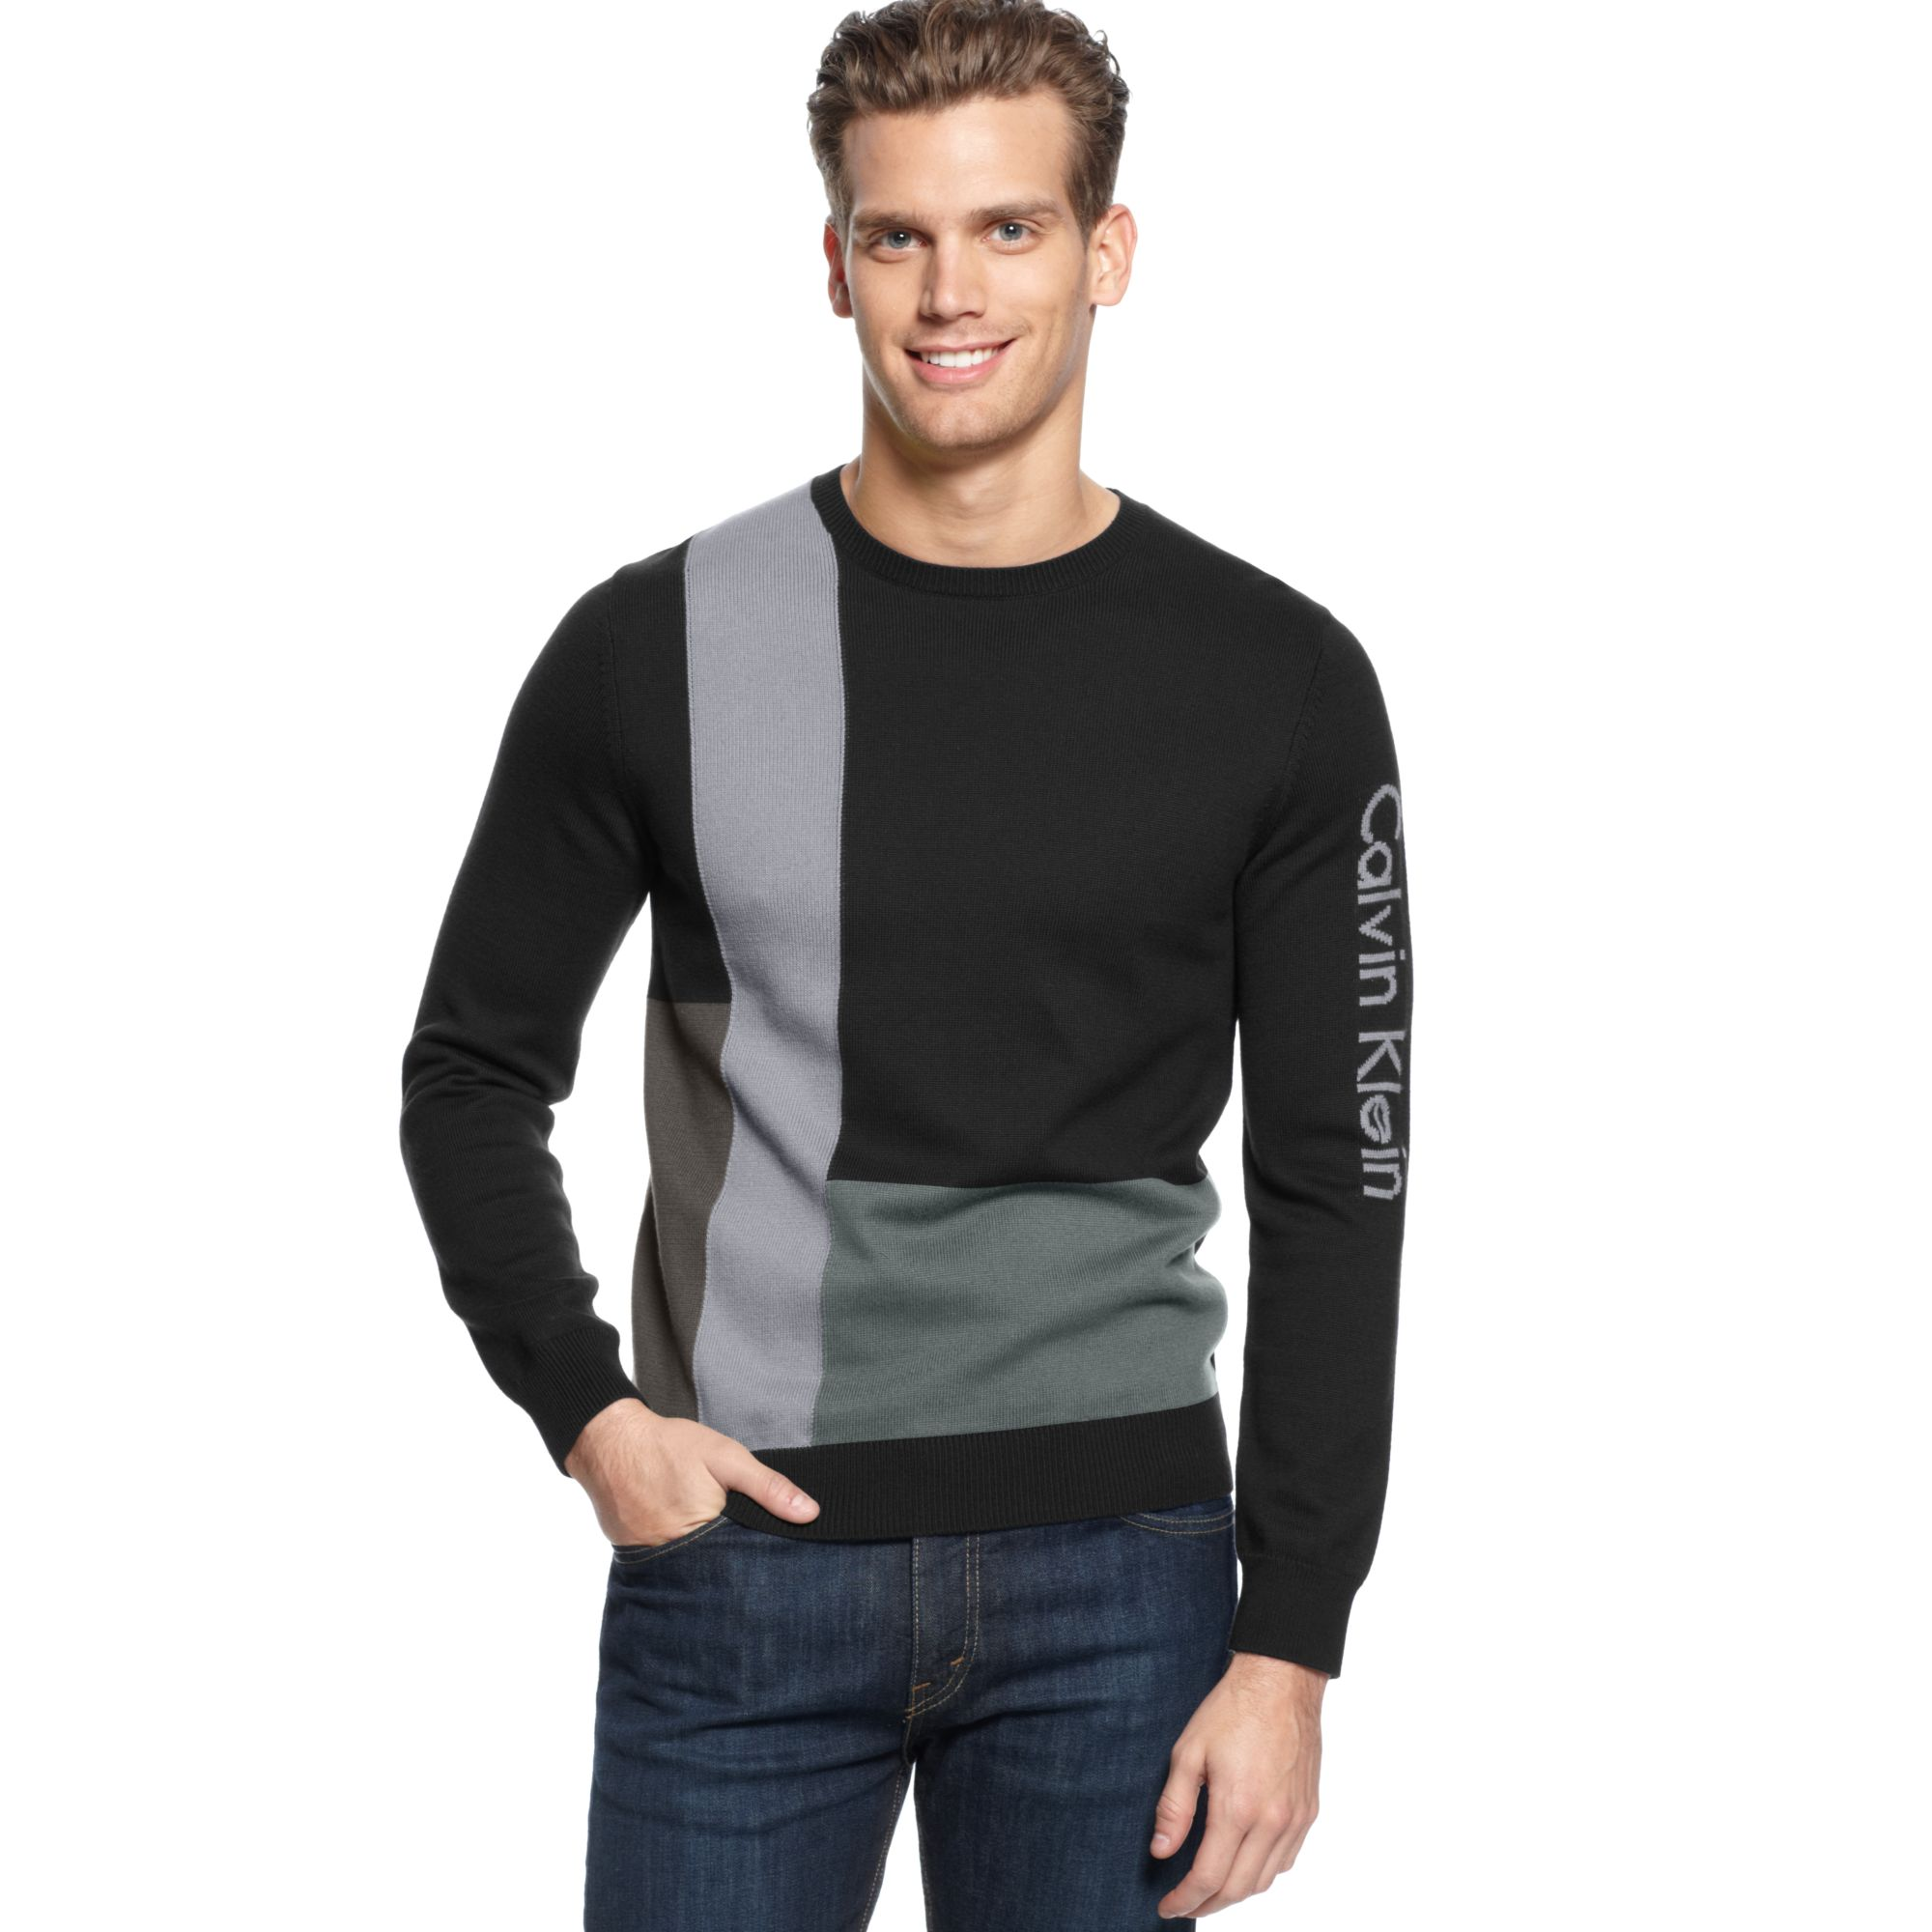 eac1d61eaa Calvin Klein Colorblock Intarsia Sweater in Black for Men - Lyst